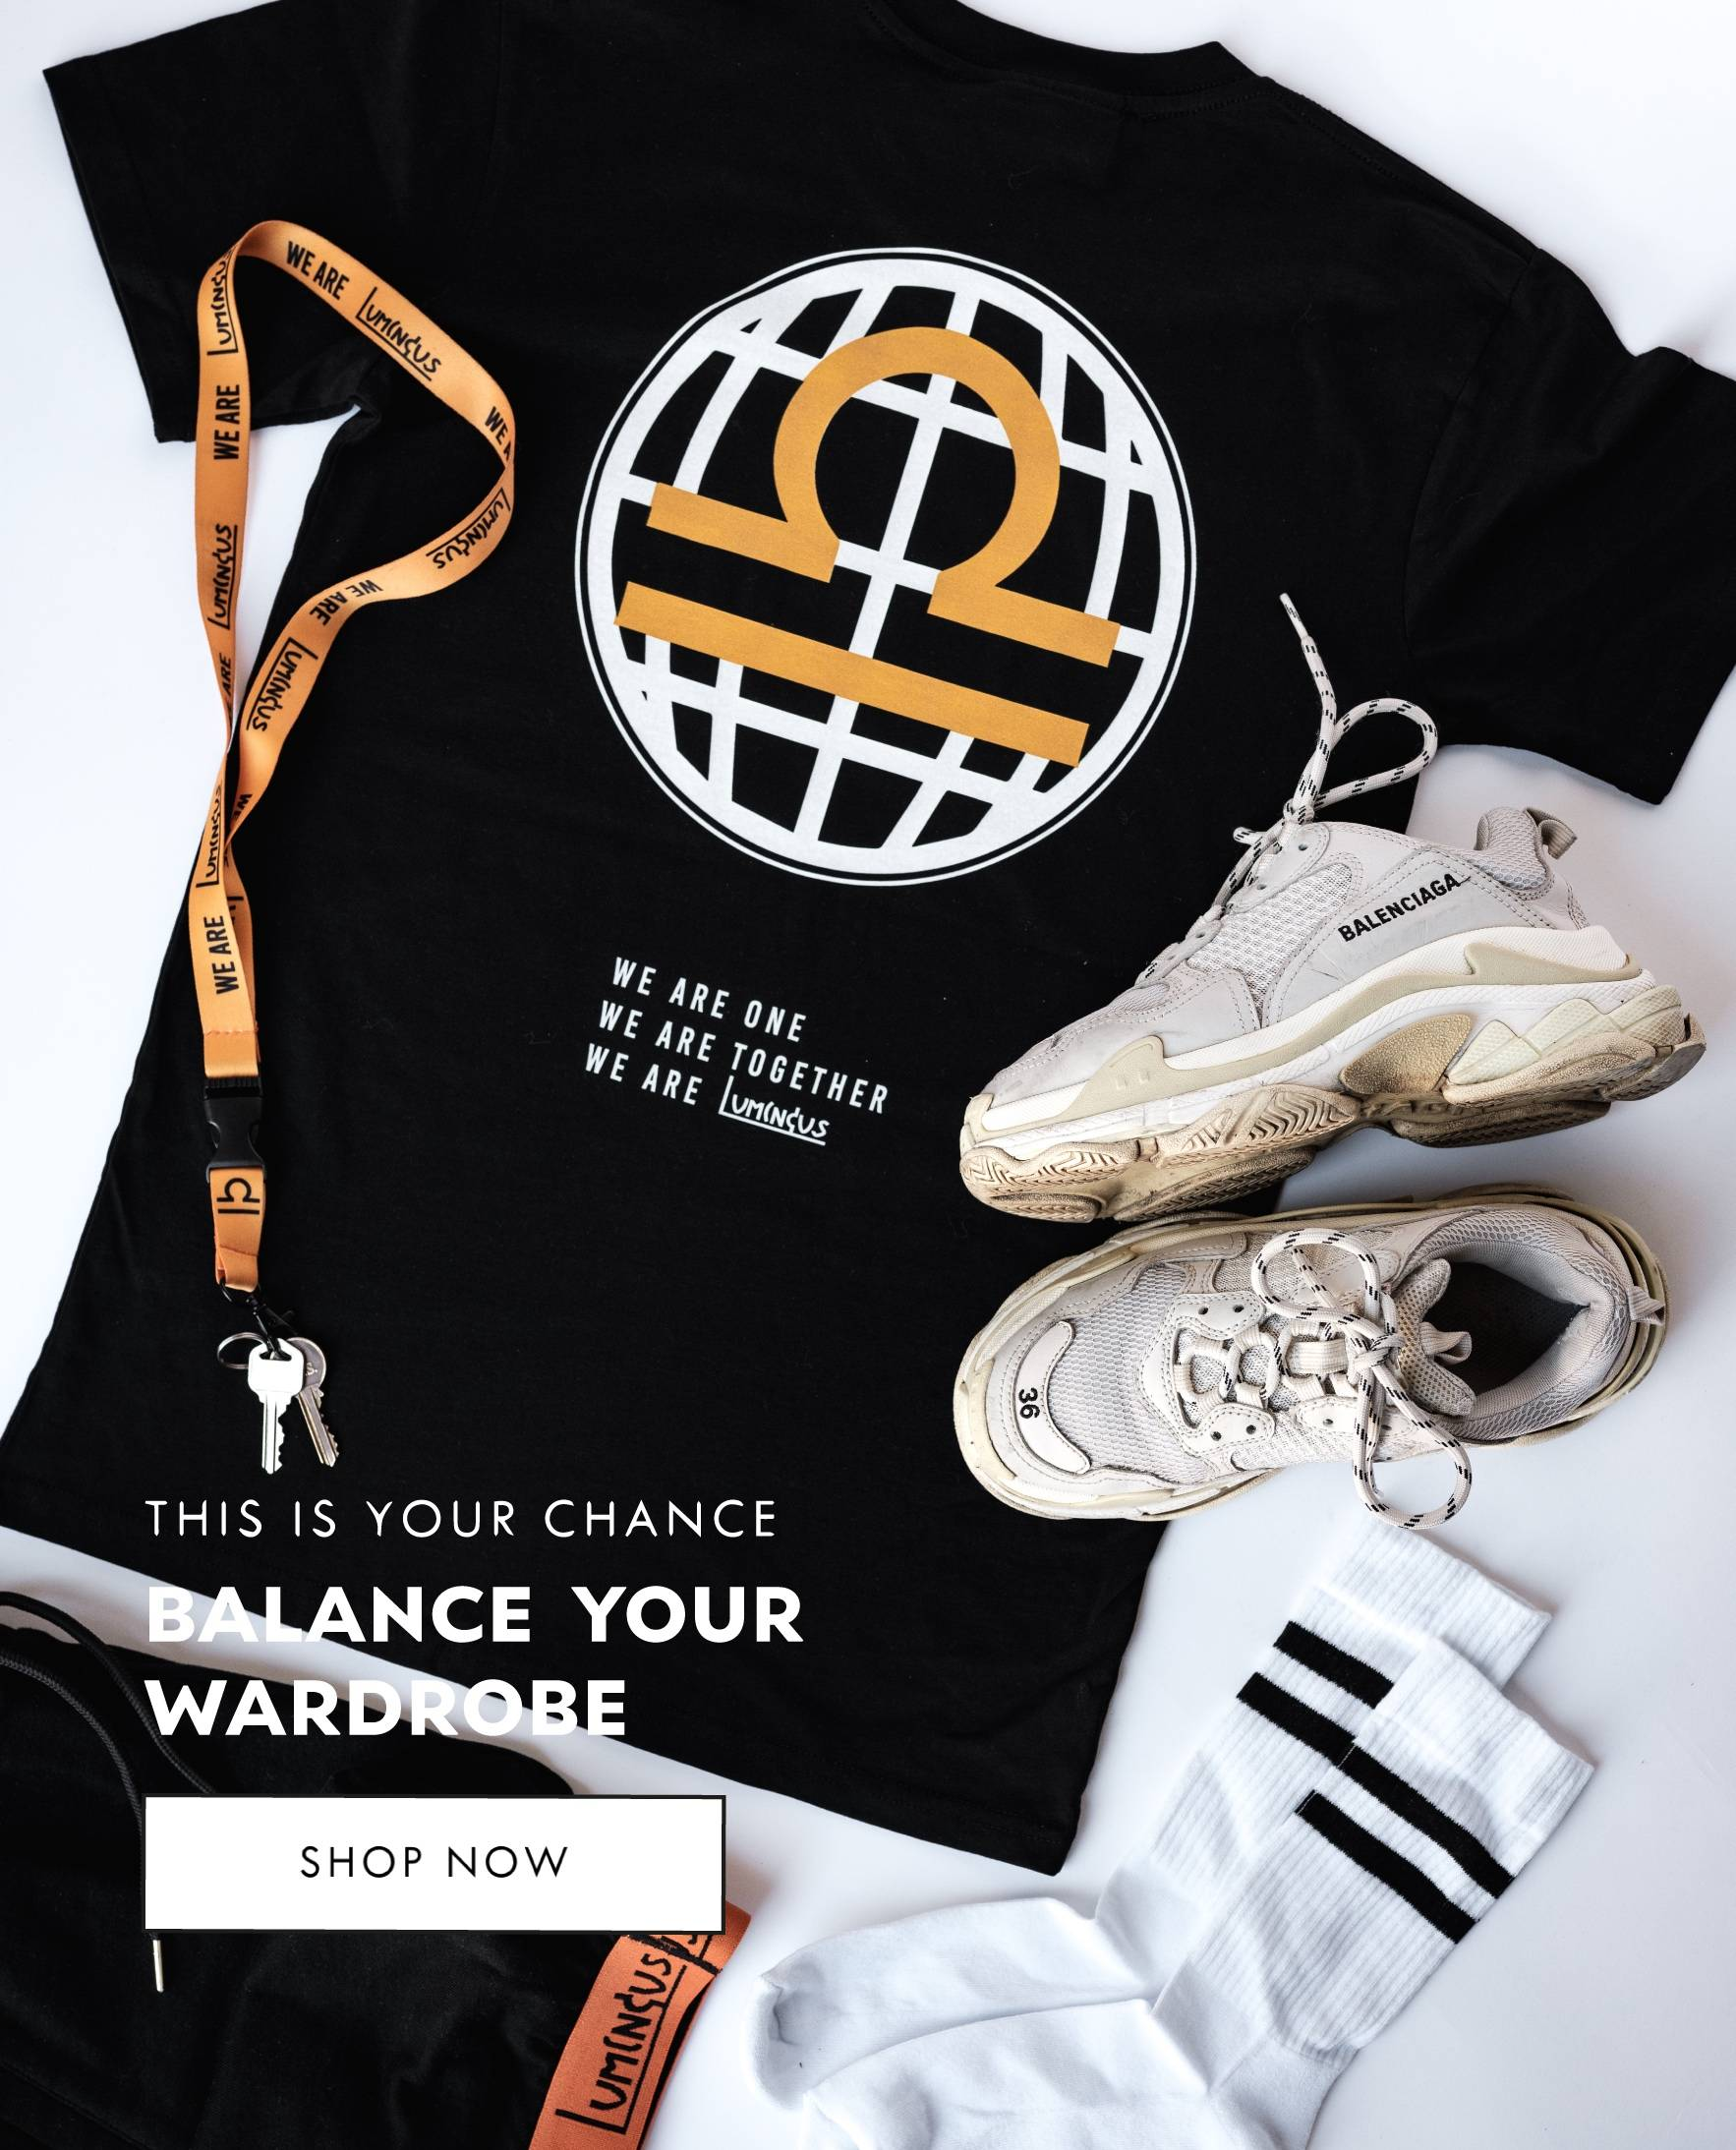 Balance your wardrobe - This is your chance